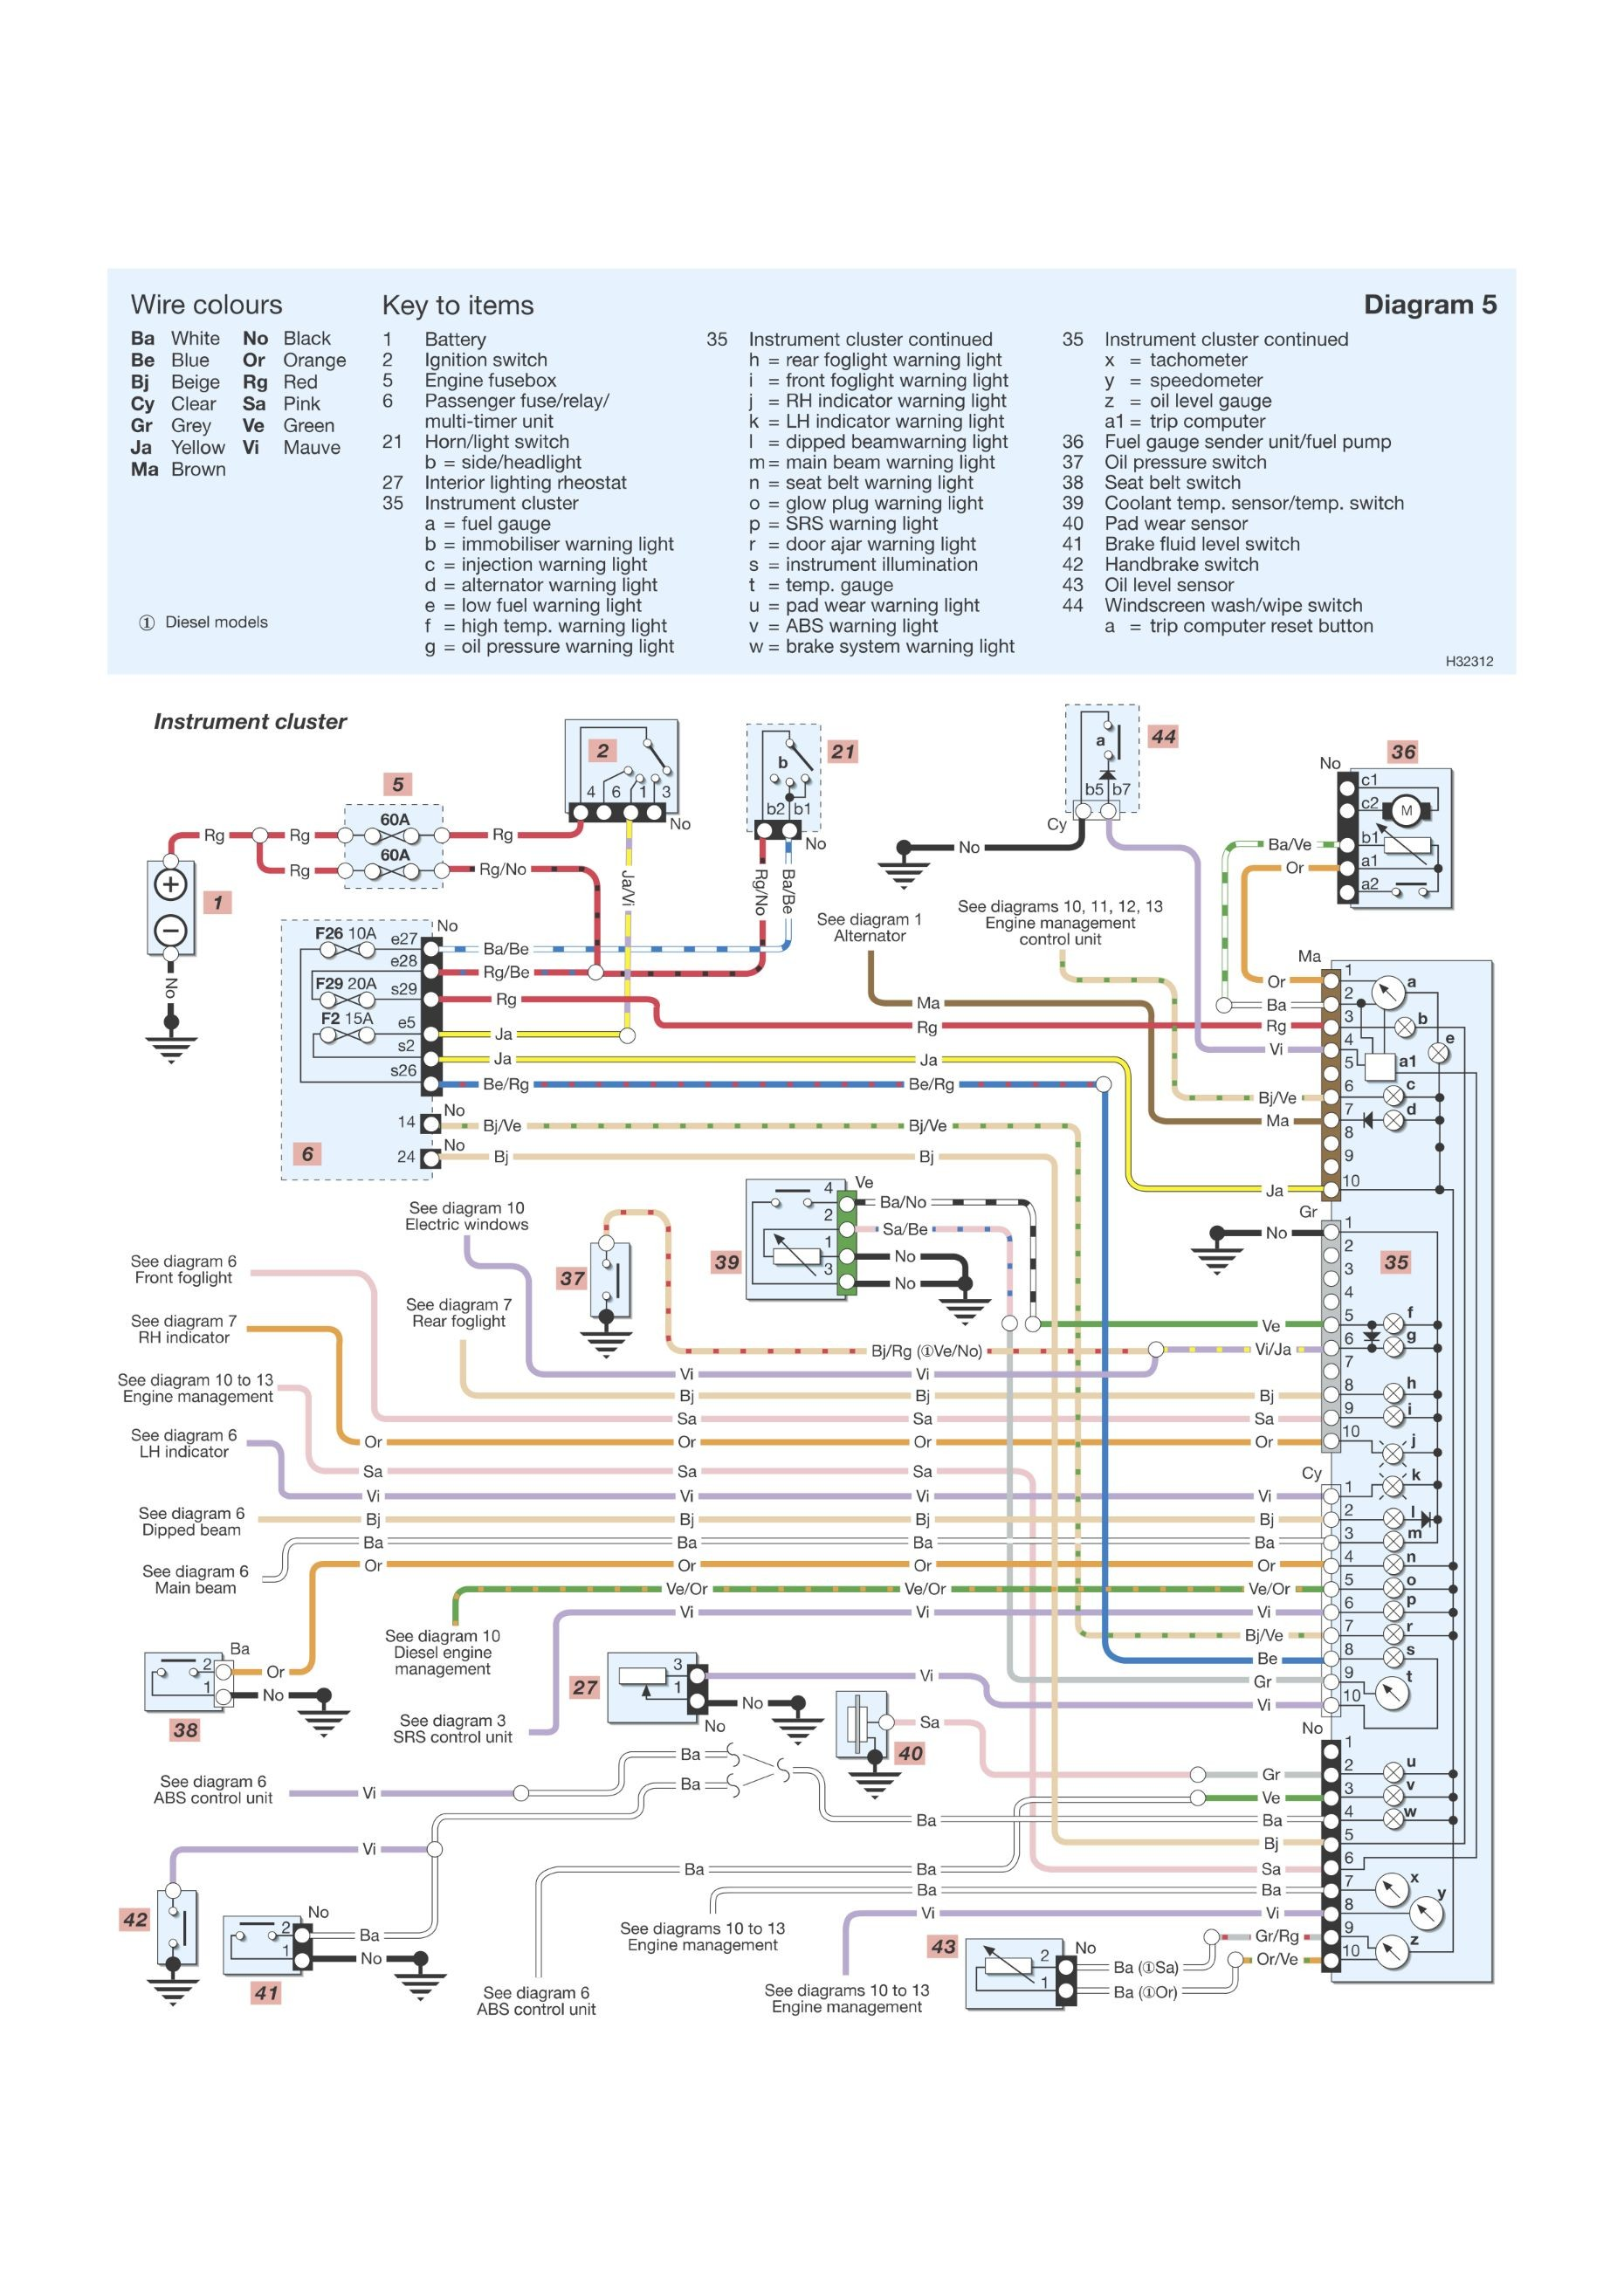 [ZHKZ_3066]  DIAGRAM] Renault Scenic Abs Wiring Diagram FULL Version HD Quality Wiring  Diagram - 11914.ACCNET.FR | Renault Rx4 Wiring Diagram |  | accnet.fr